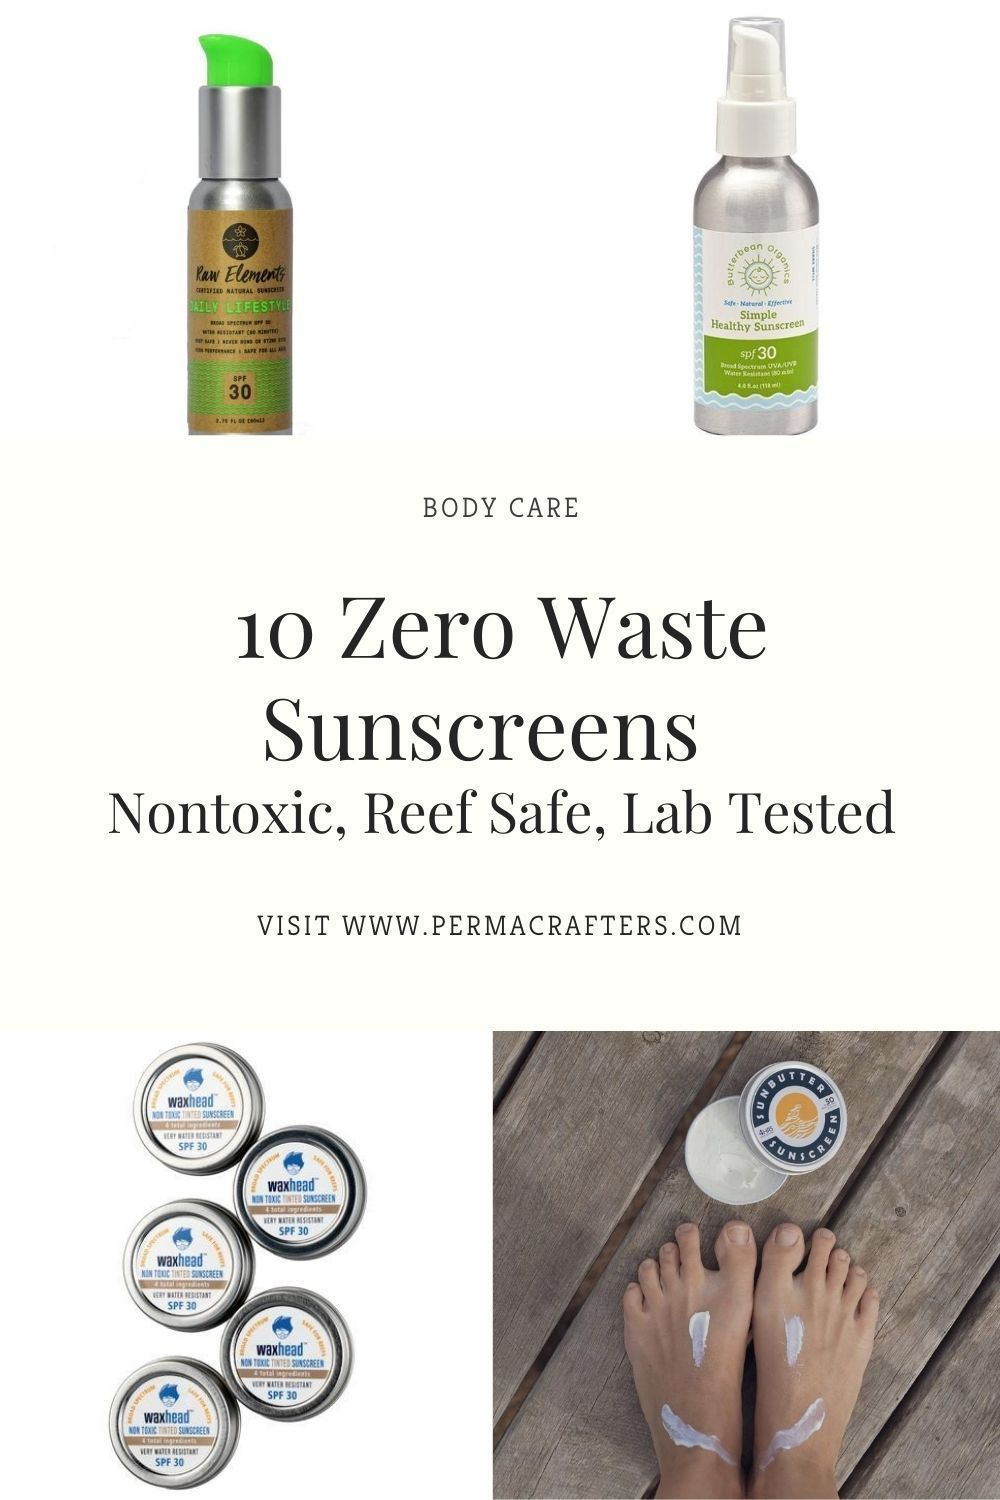 10 Zero Waste Sunscreens Nontoxic, Reef Safe, Lab Tested